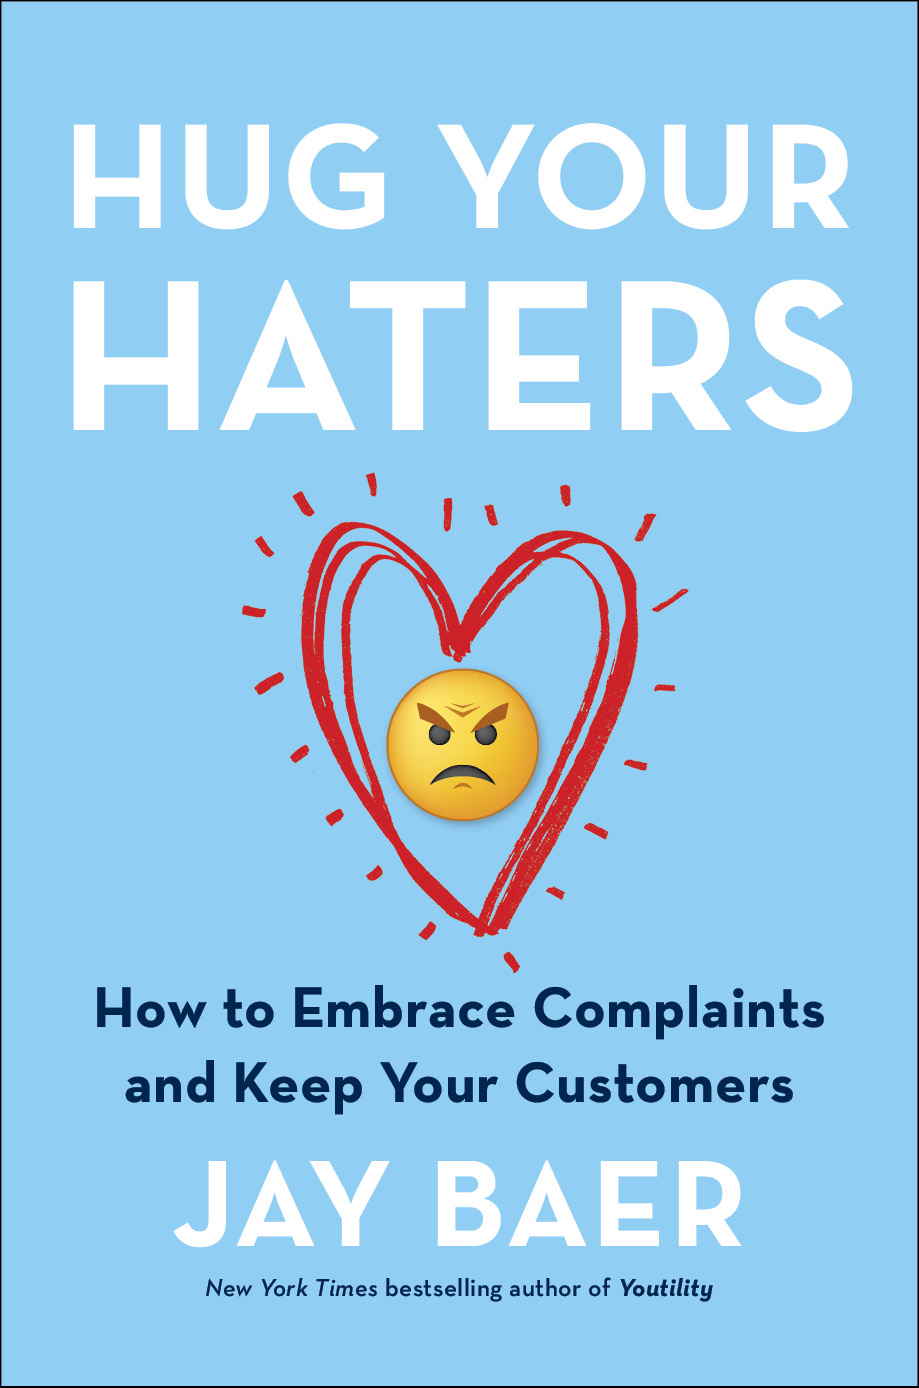 best-marketing-books-2017-hug-your-haters.jpg